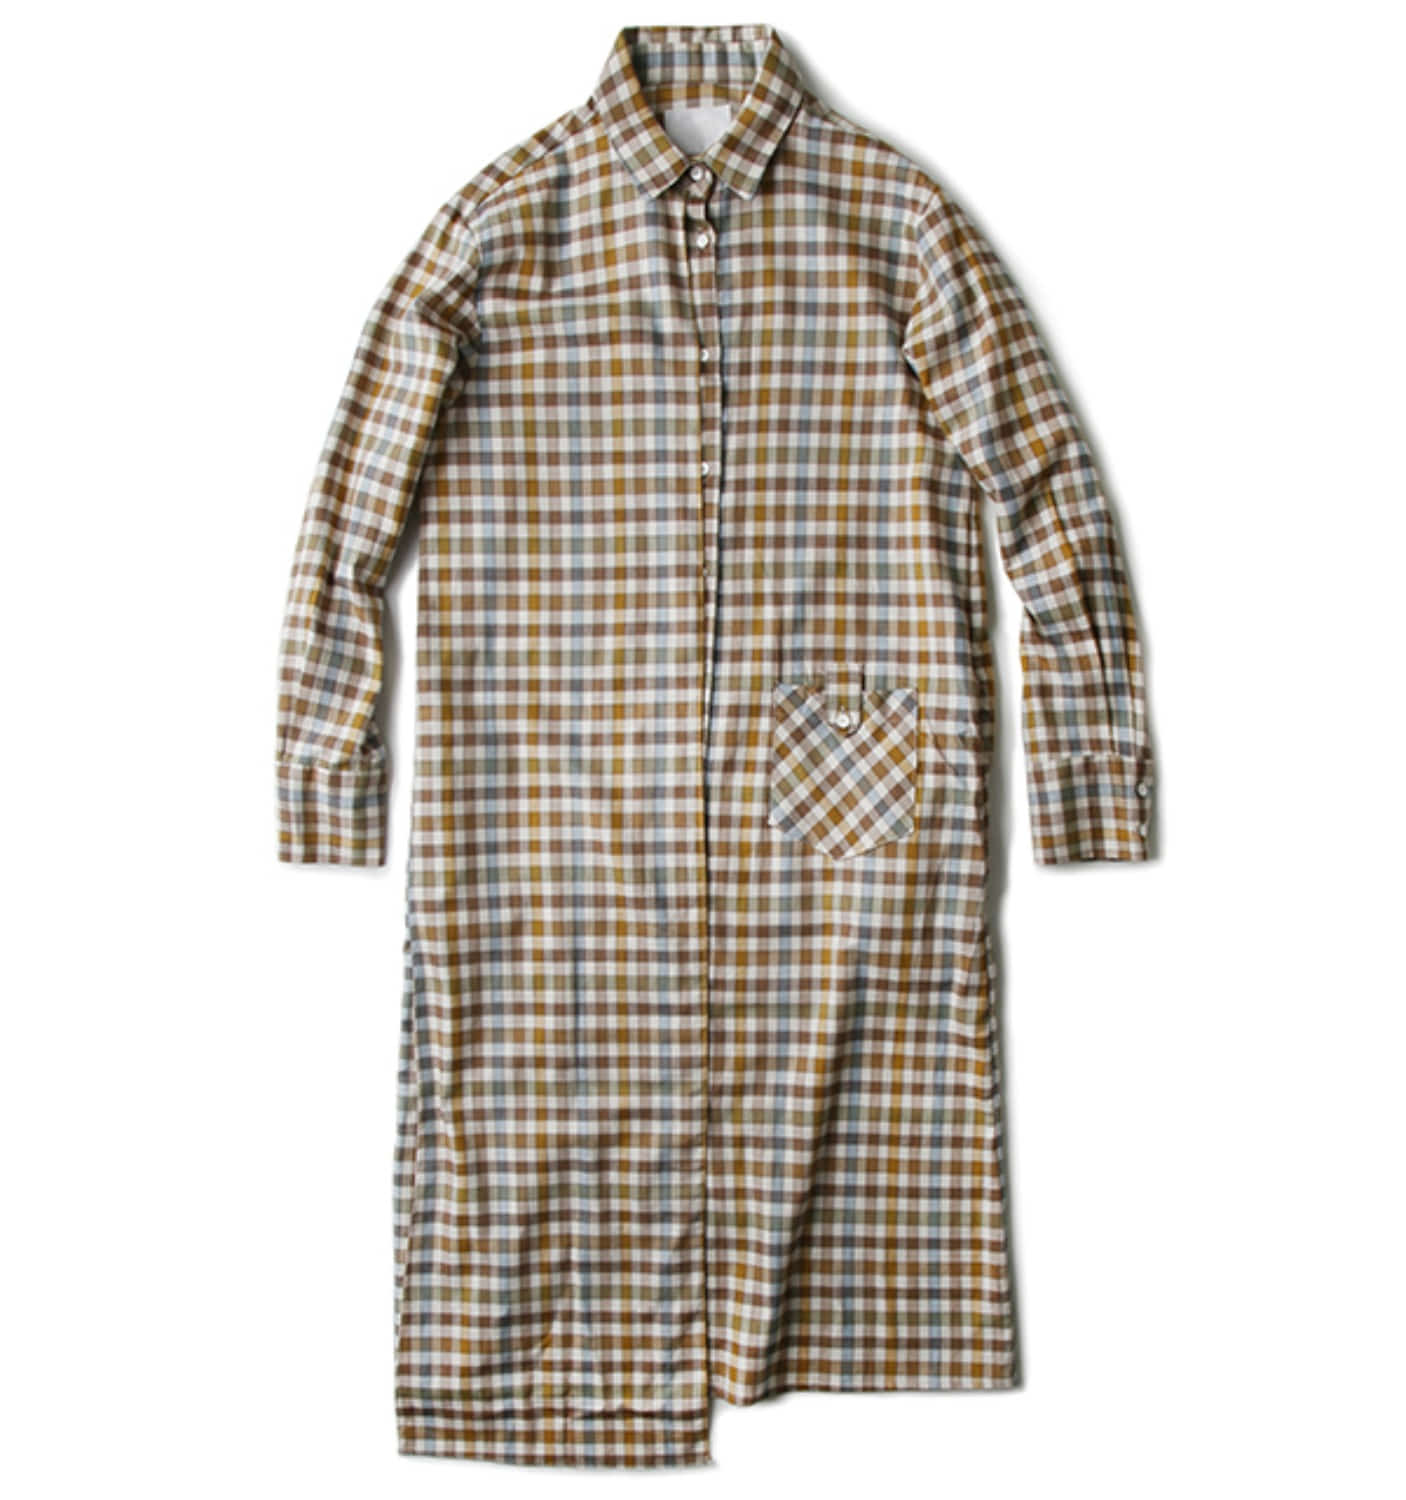 BLATT SHIRT DRESS-BROWN GINGHAMCHECK